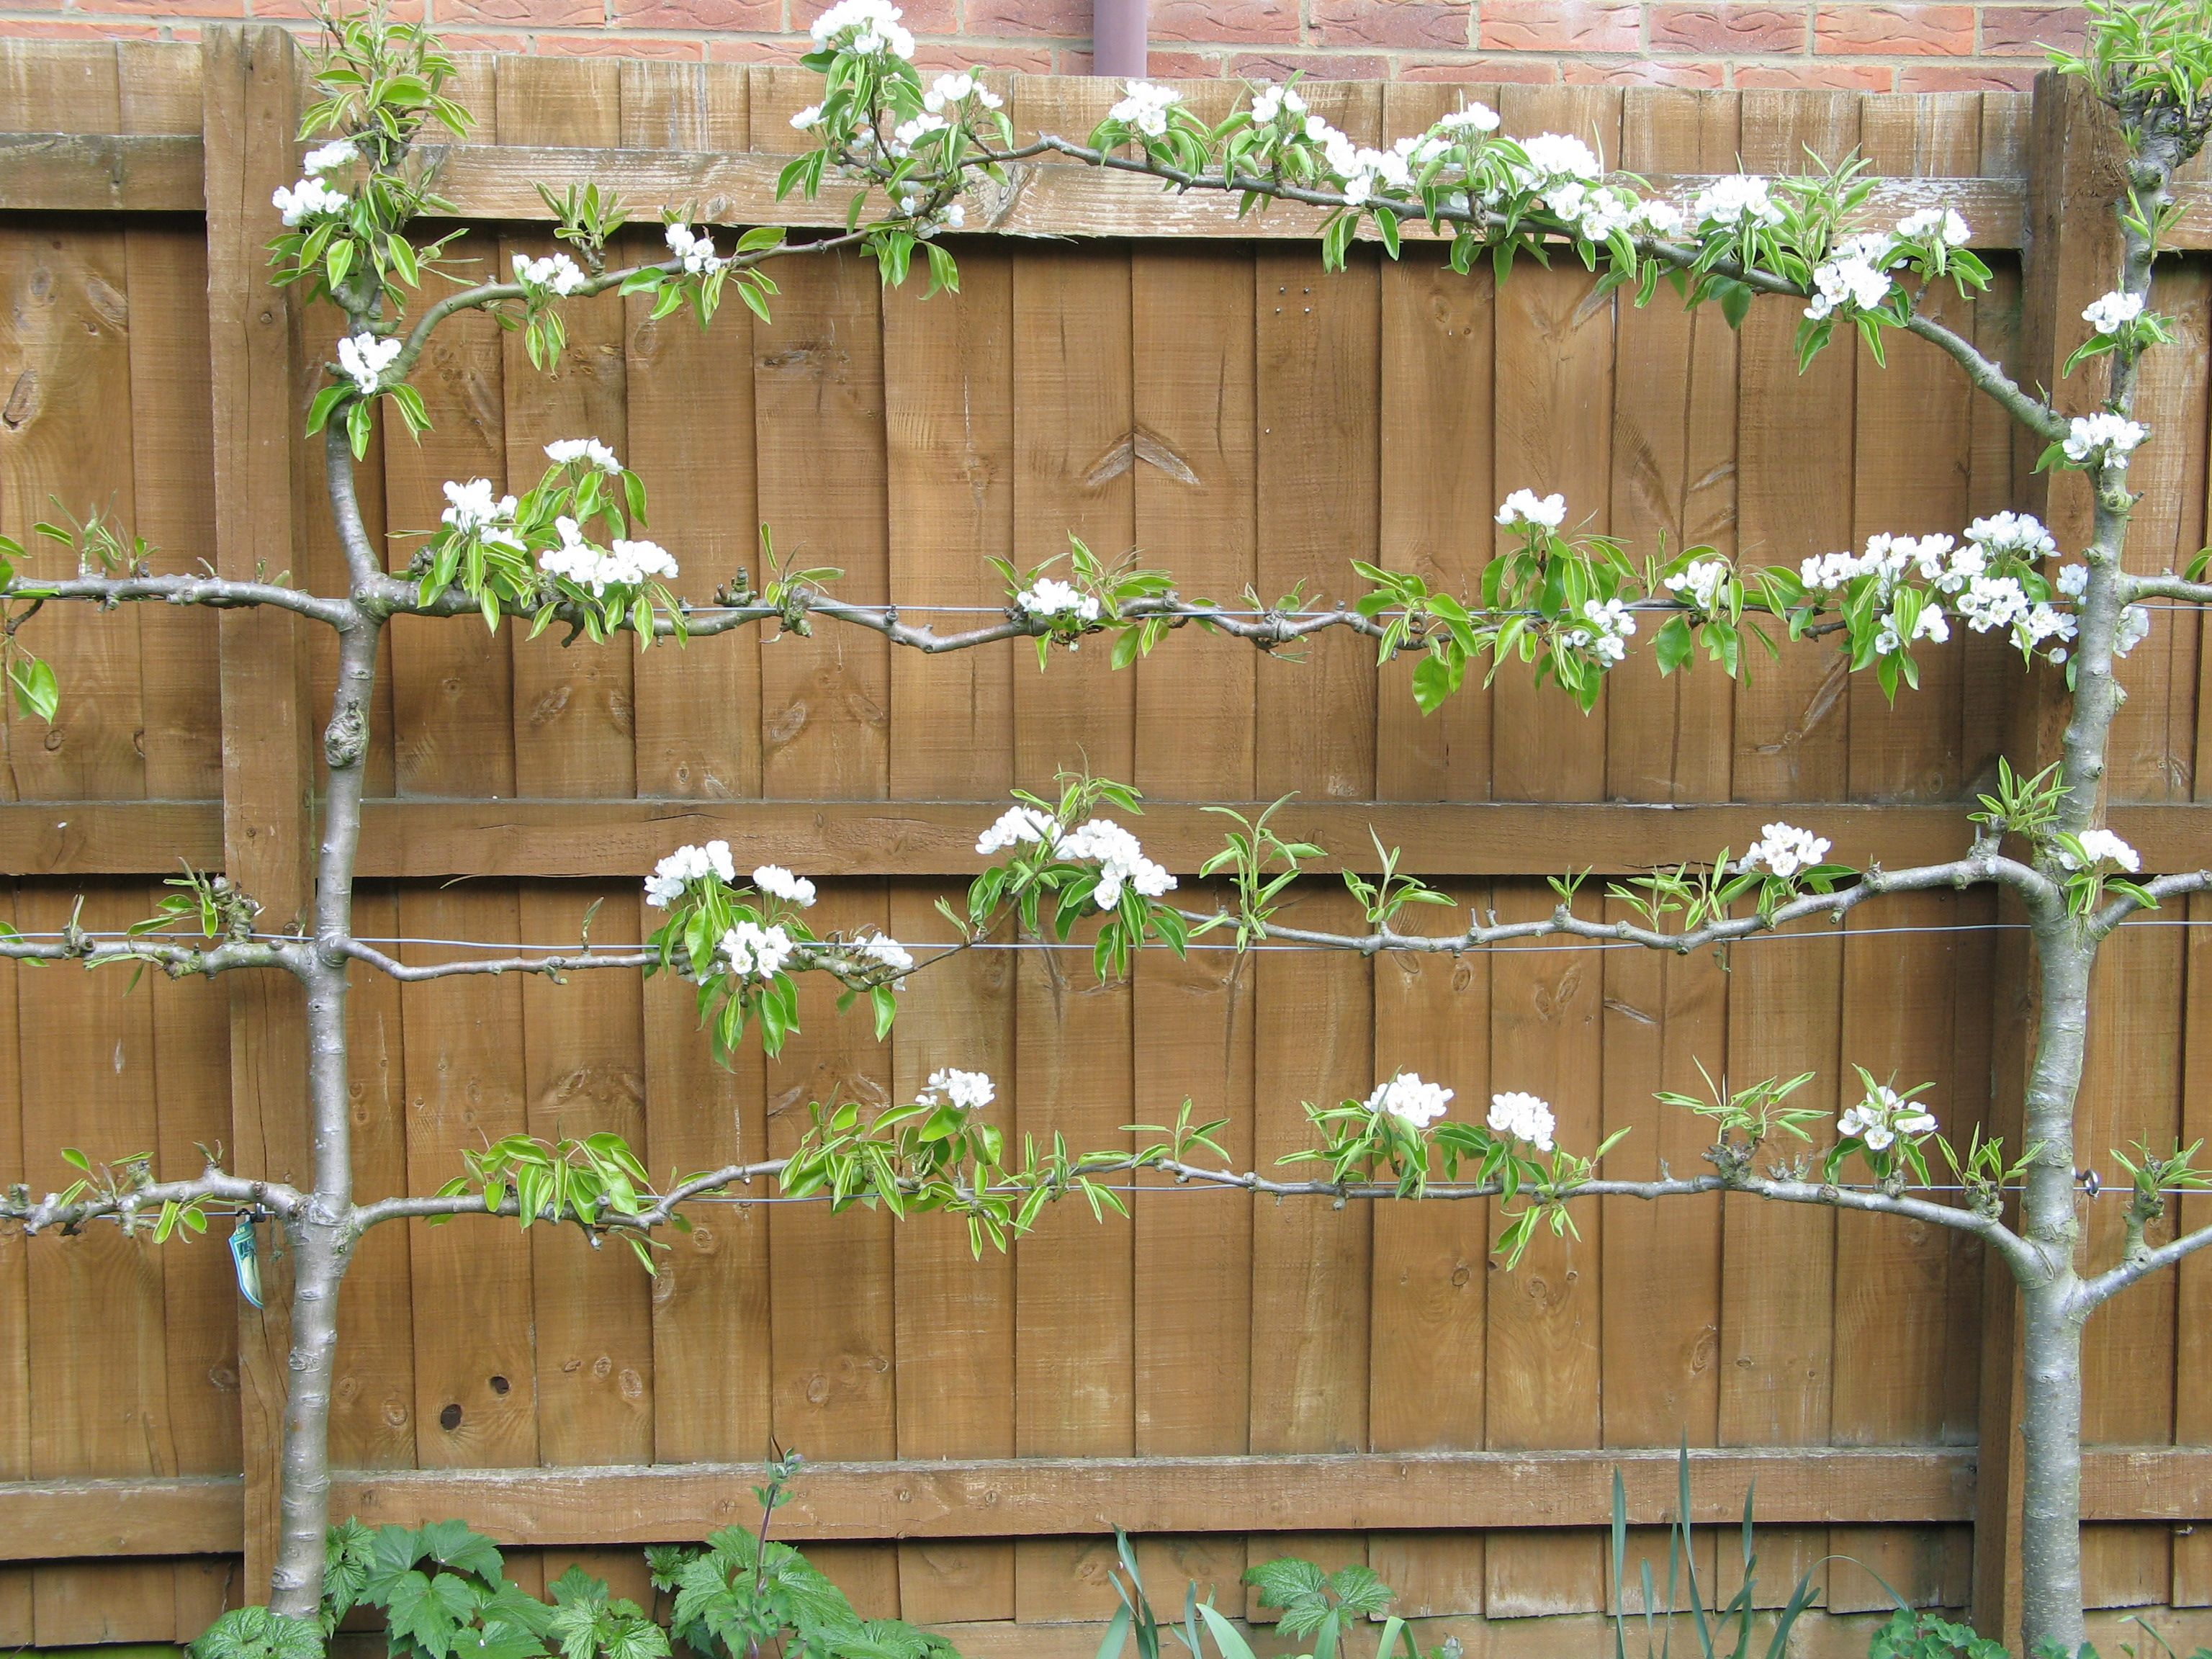 Small Garden Ideas | Fruit Trees for Small Gardens | Karen Tizzard ...